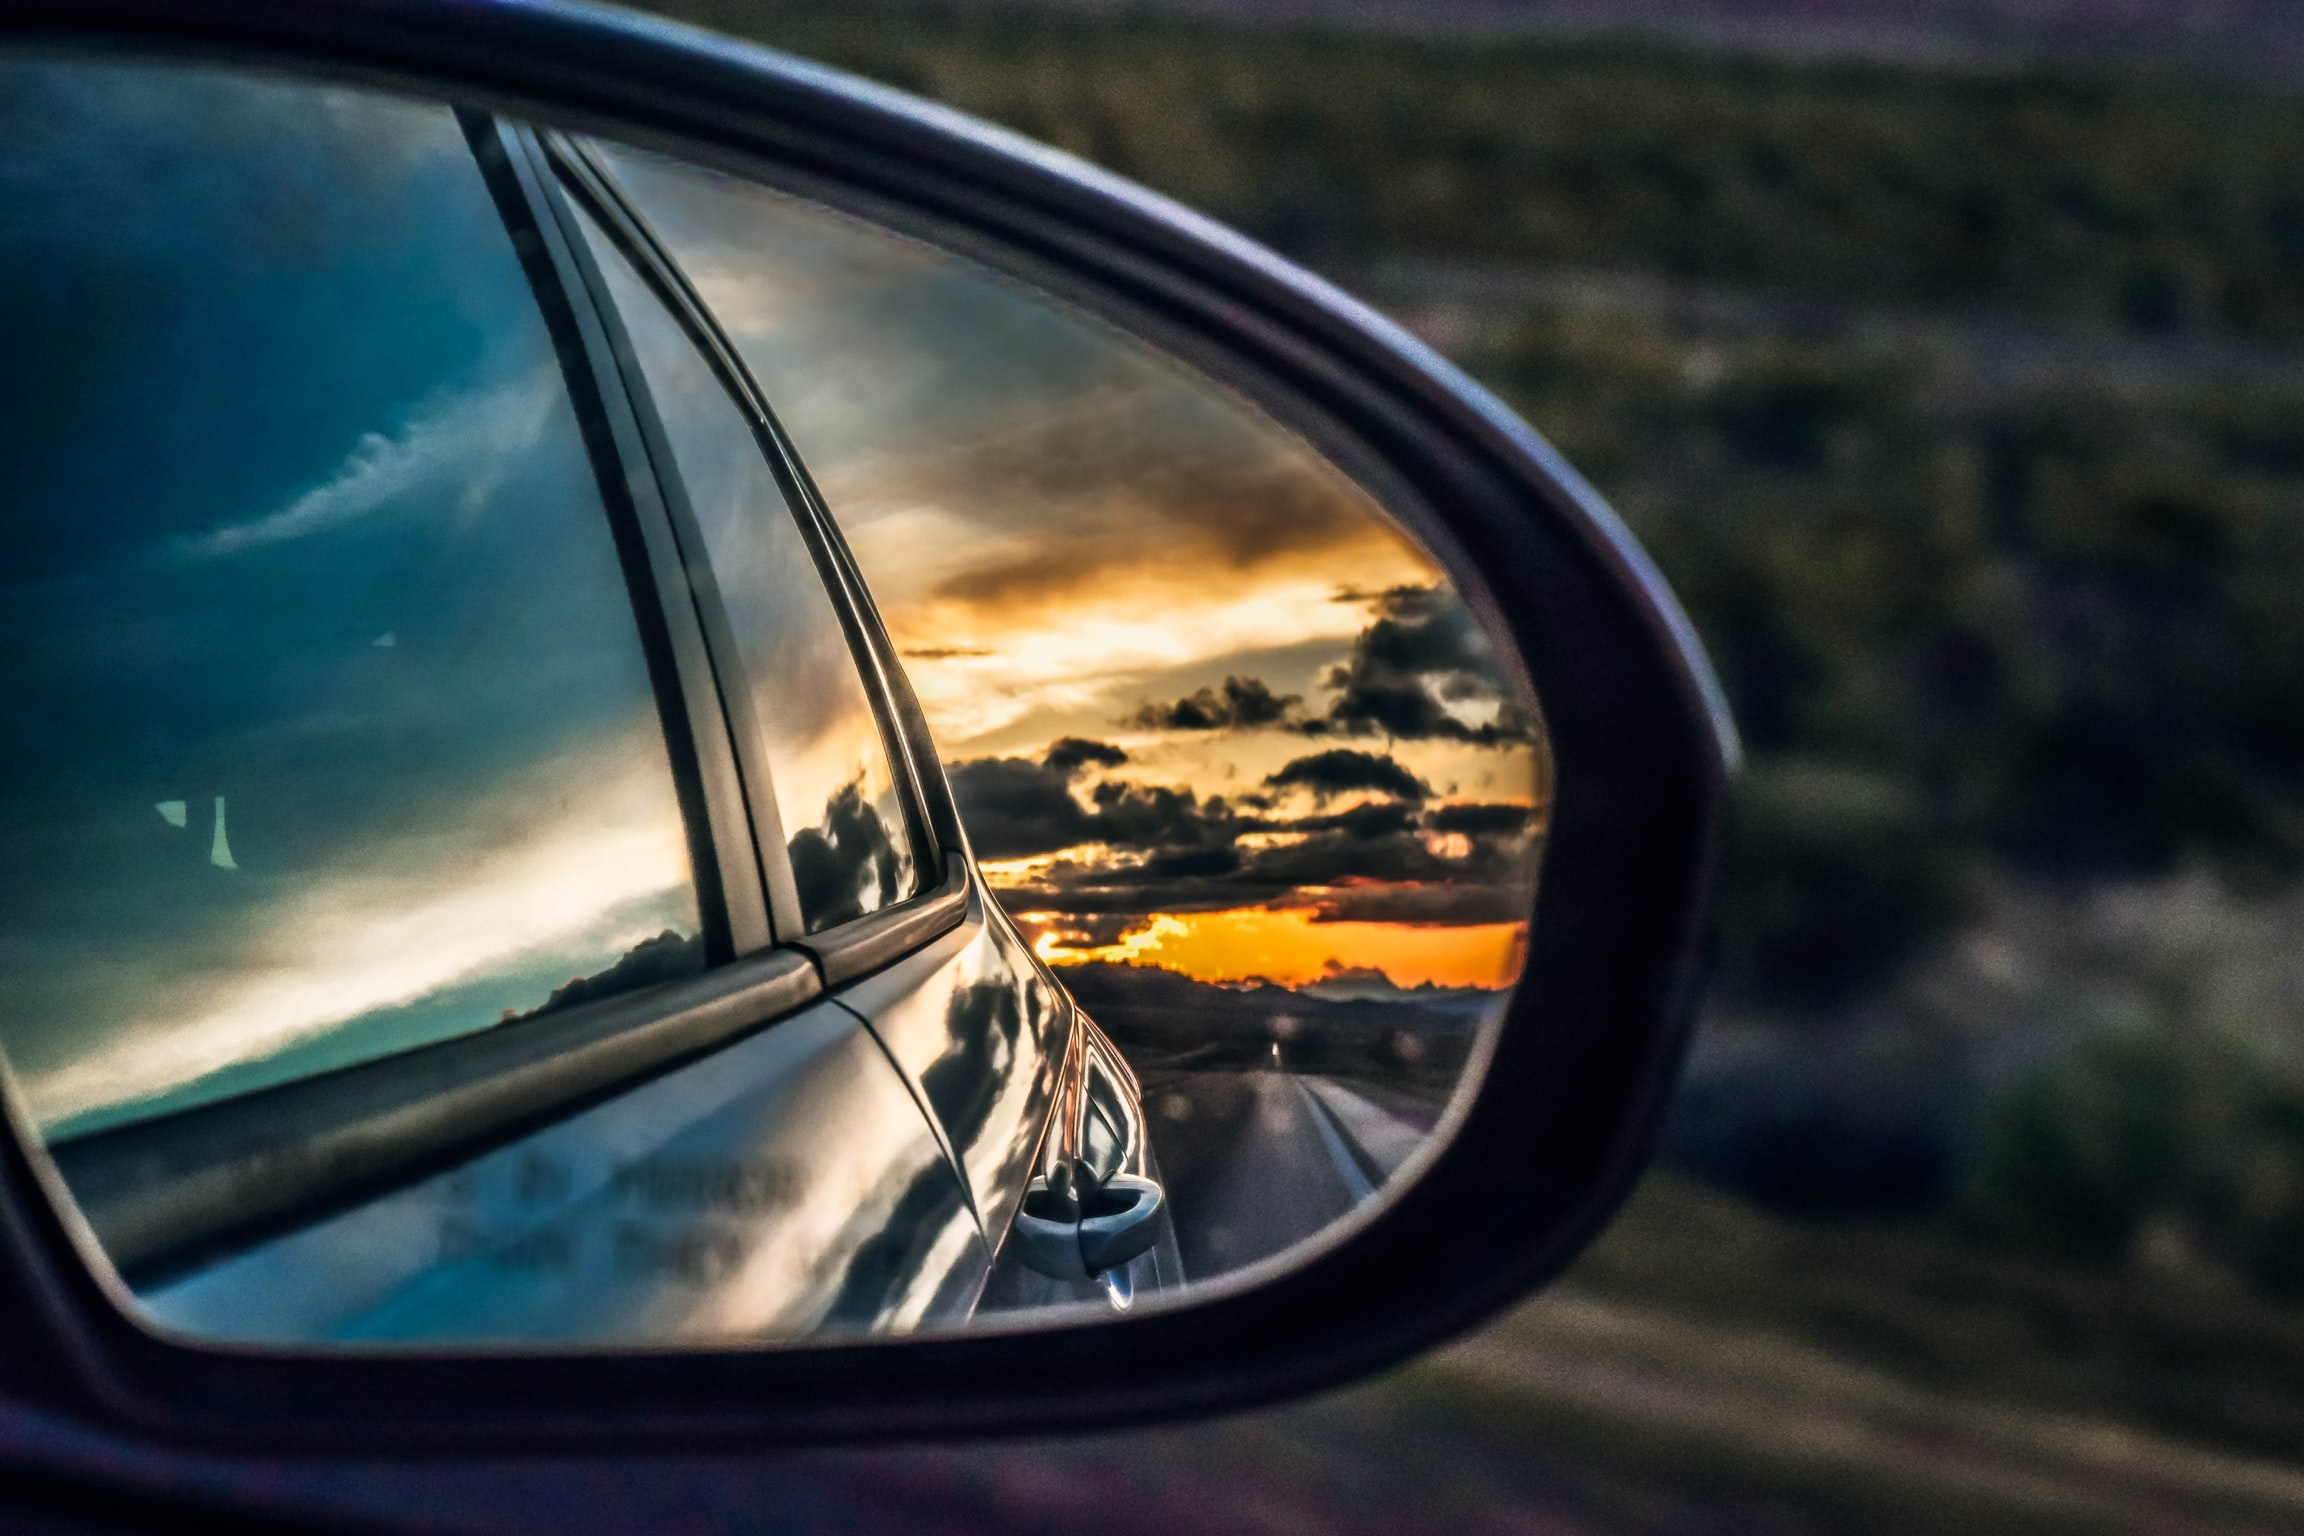 side mirror showing dark sky